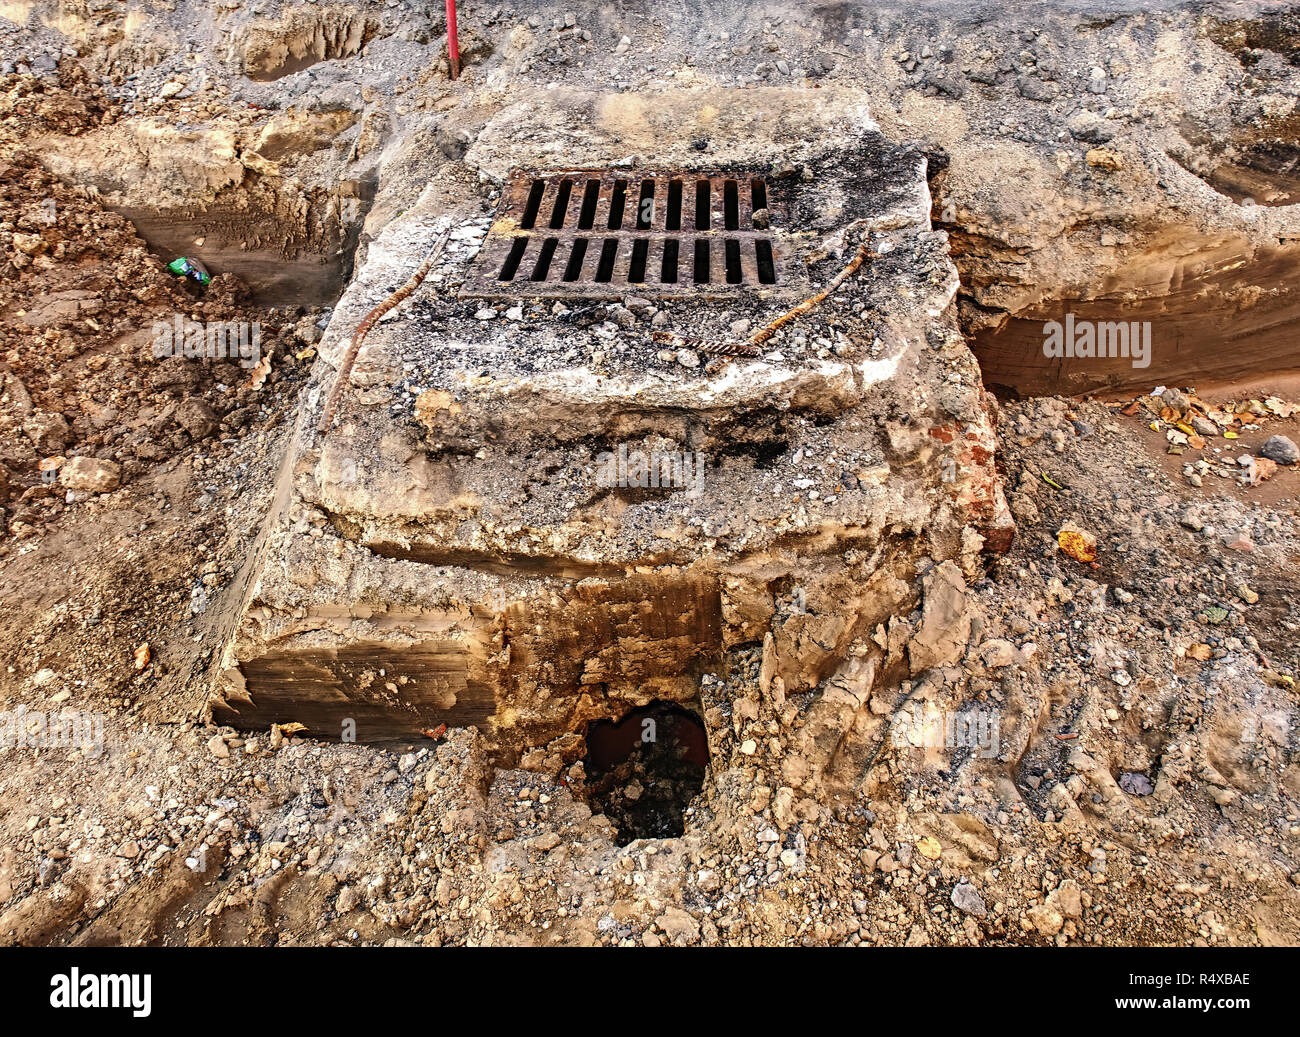 Sewer hole with cover in middle of square under reconstruction.  Semi cross section of sewer or drain grate under road. - Stock Image